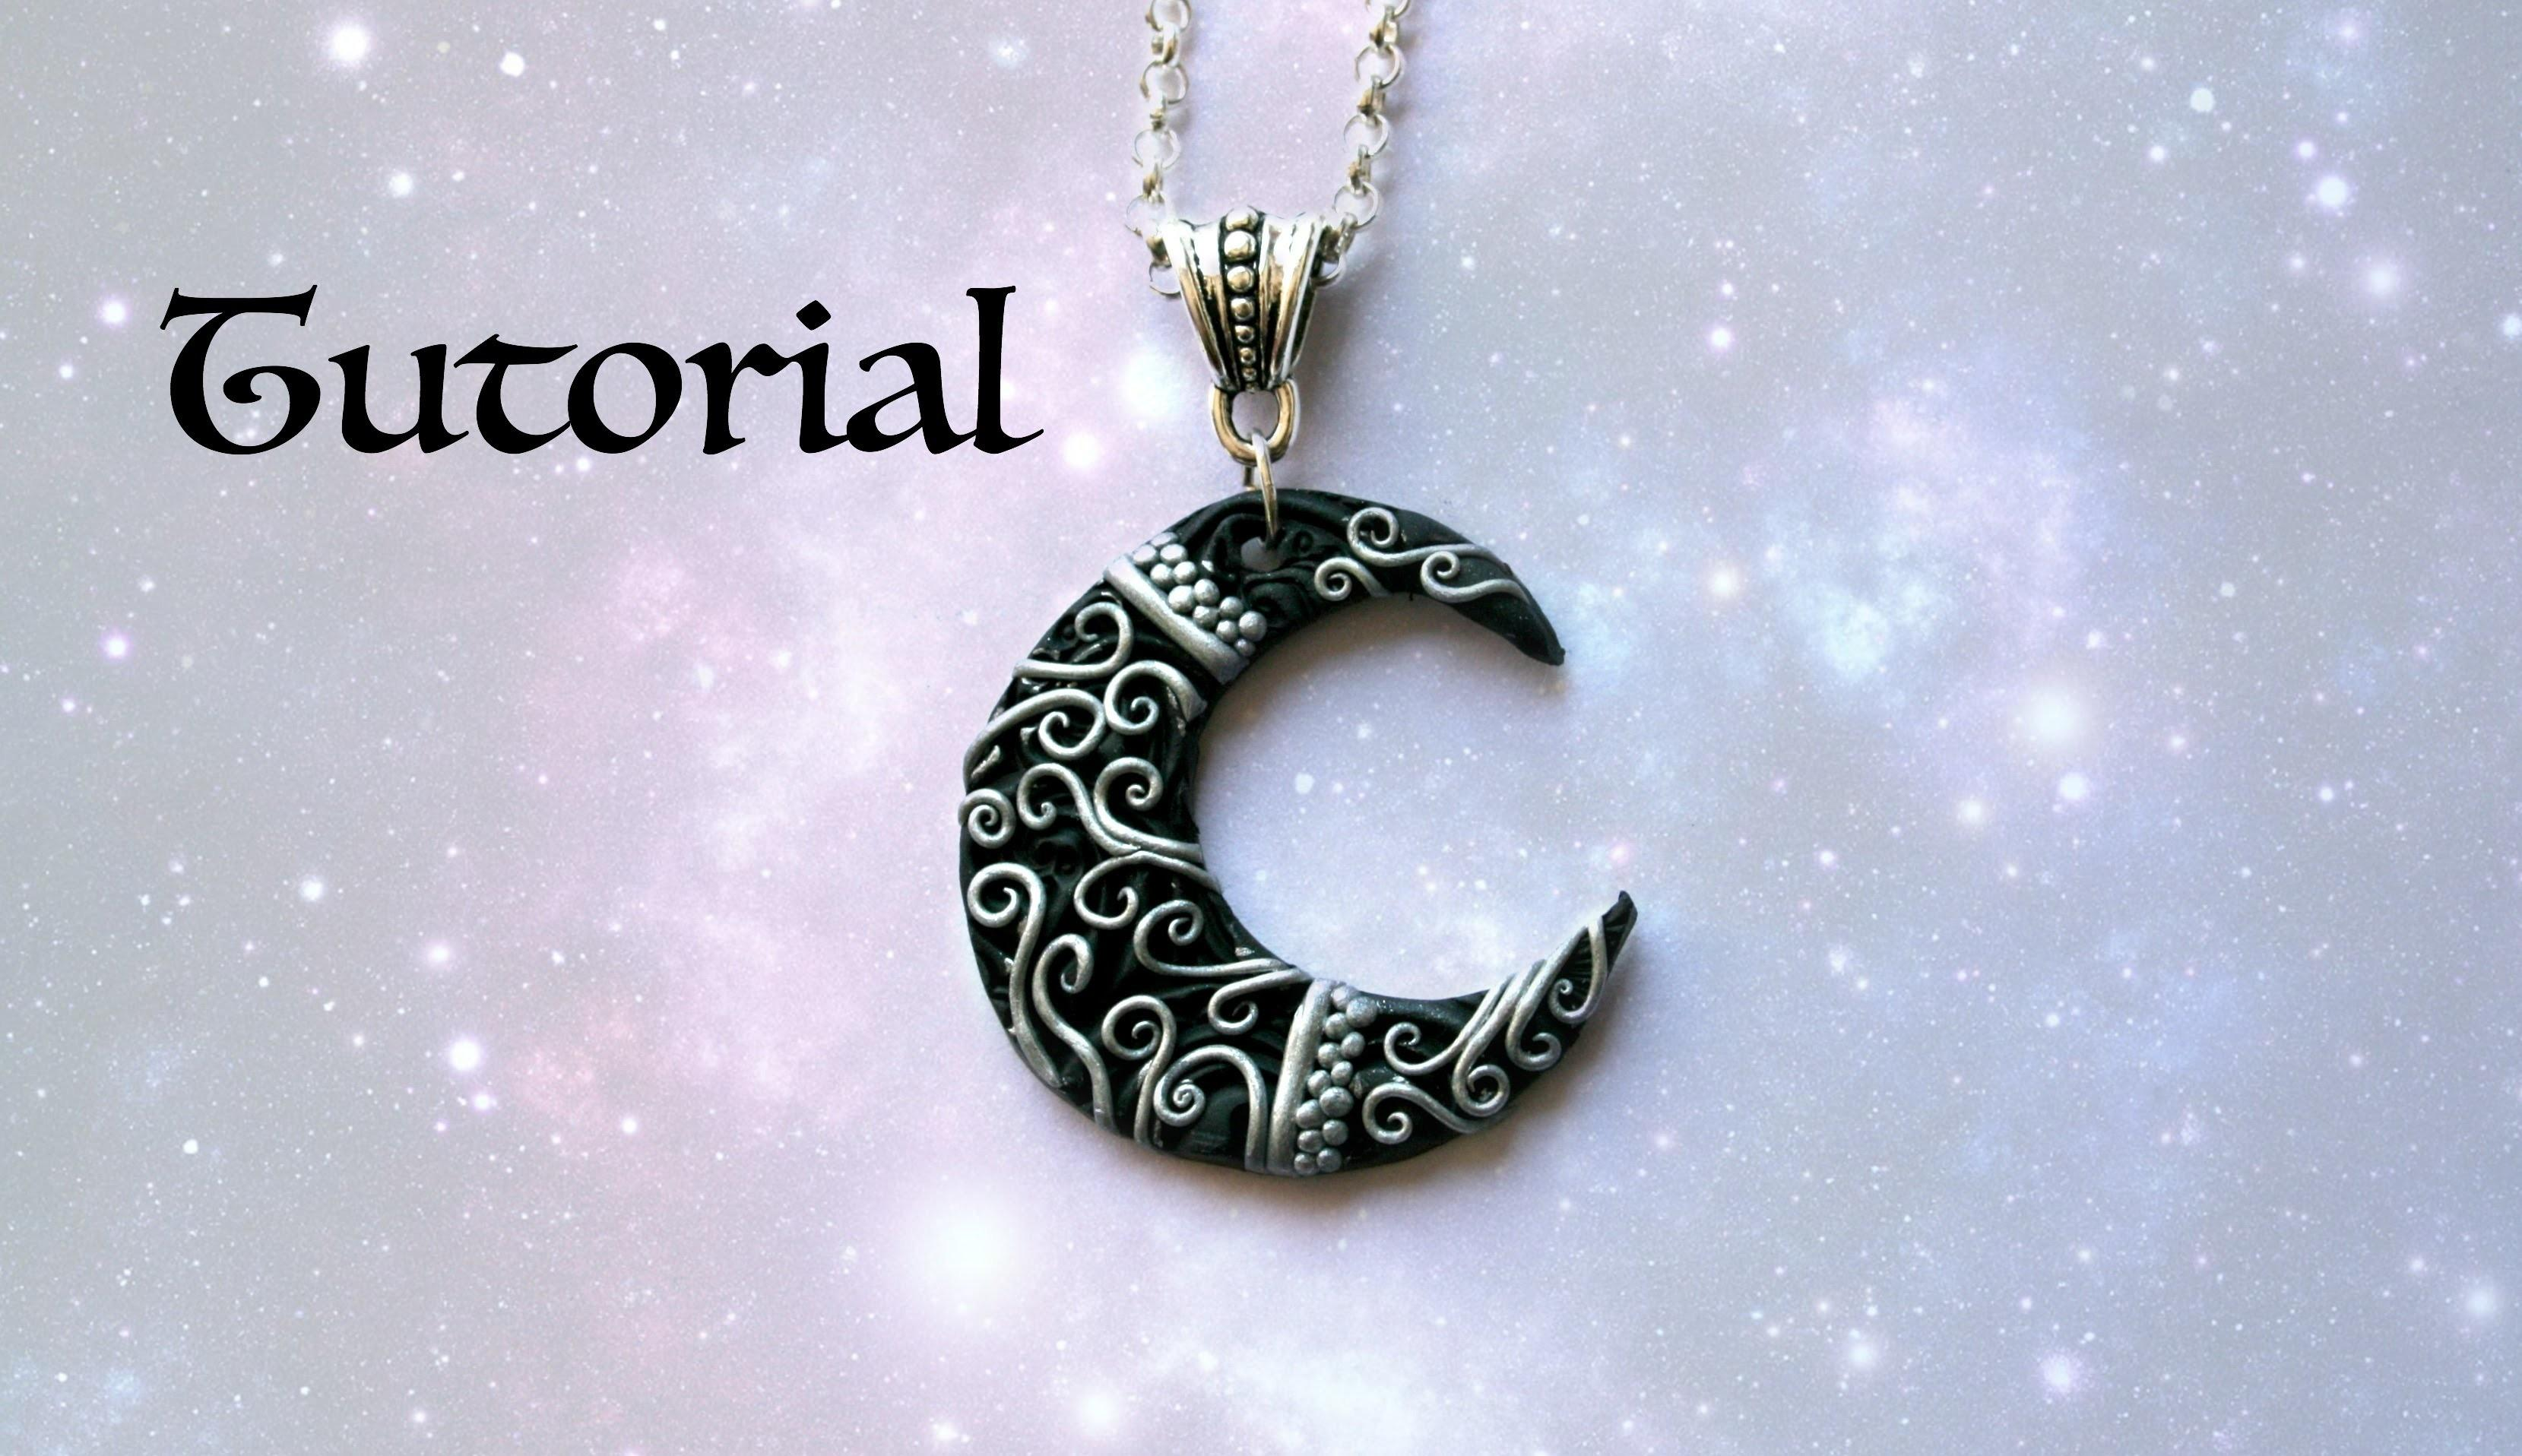 Ornate Crescent Moon Diy Pendant Polymer Clay Jewelry